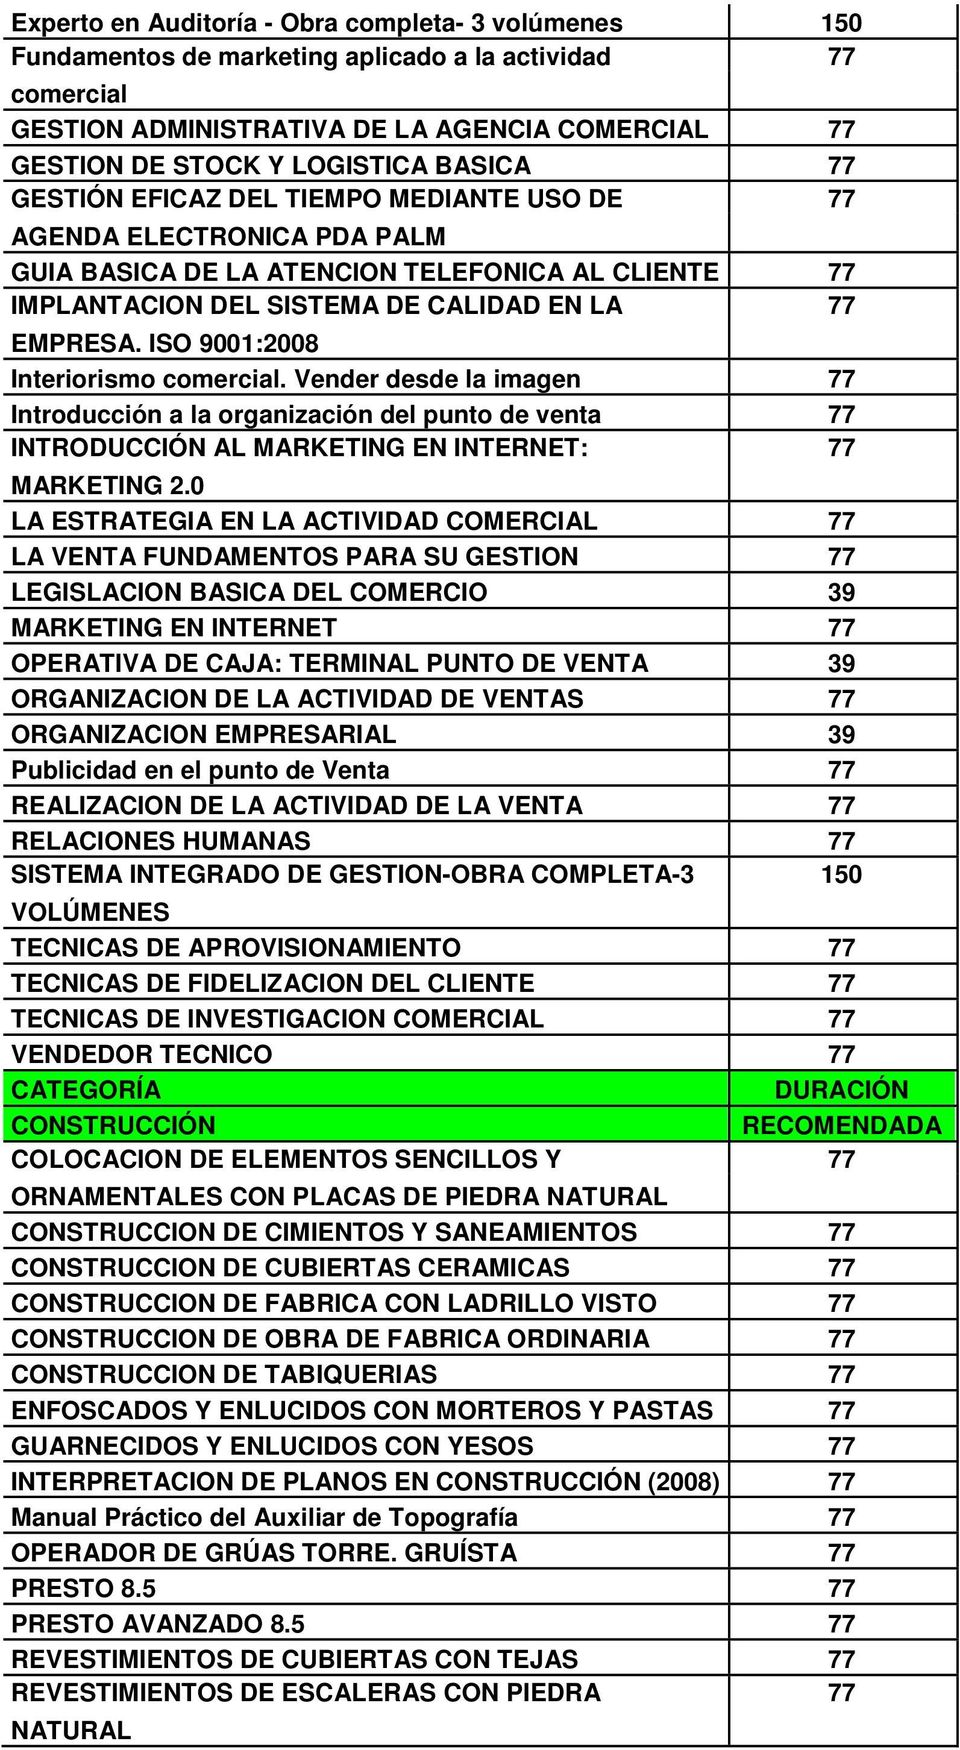 ISO 9001:2008 Interiorismo comercial. Vender desde la imagen 77 Introducción a la organización del punto de venta 77 INTRODUCCIÓN AL MARKETING EN INTERNET: 77 MARKETING 2.